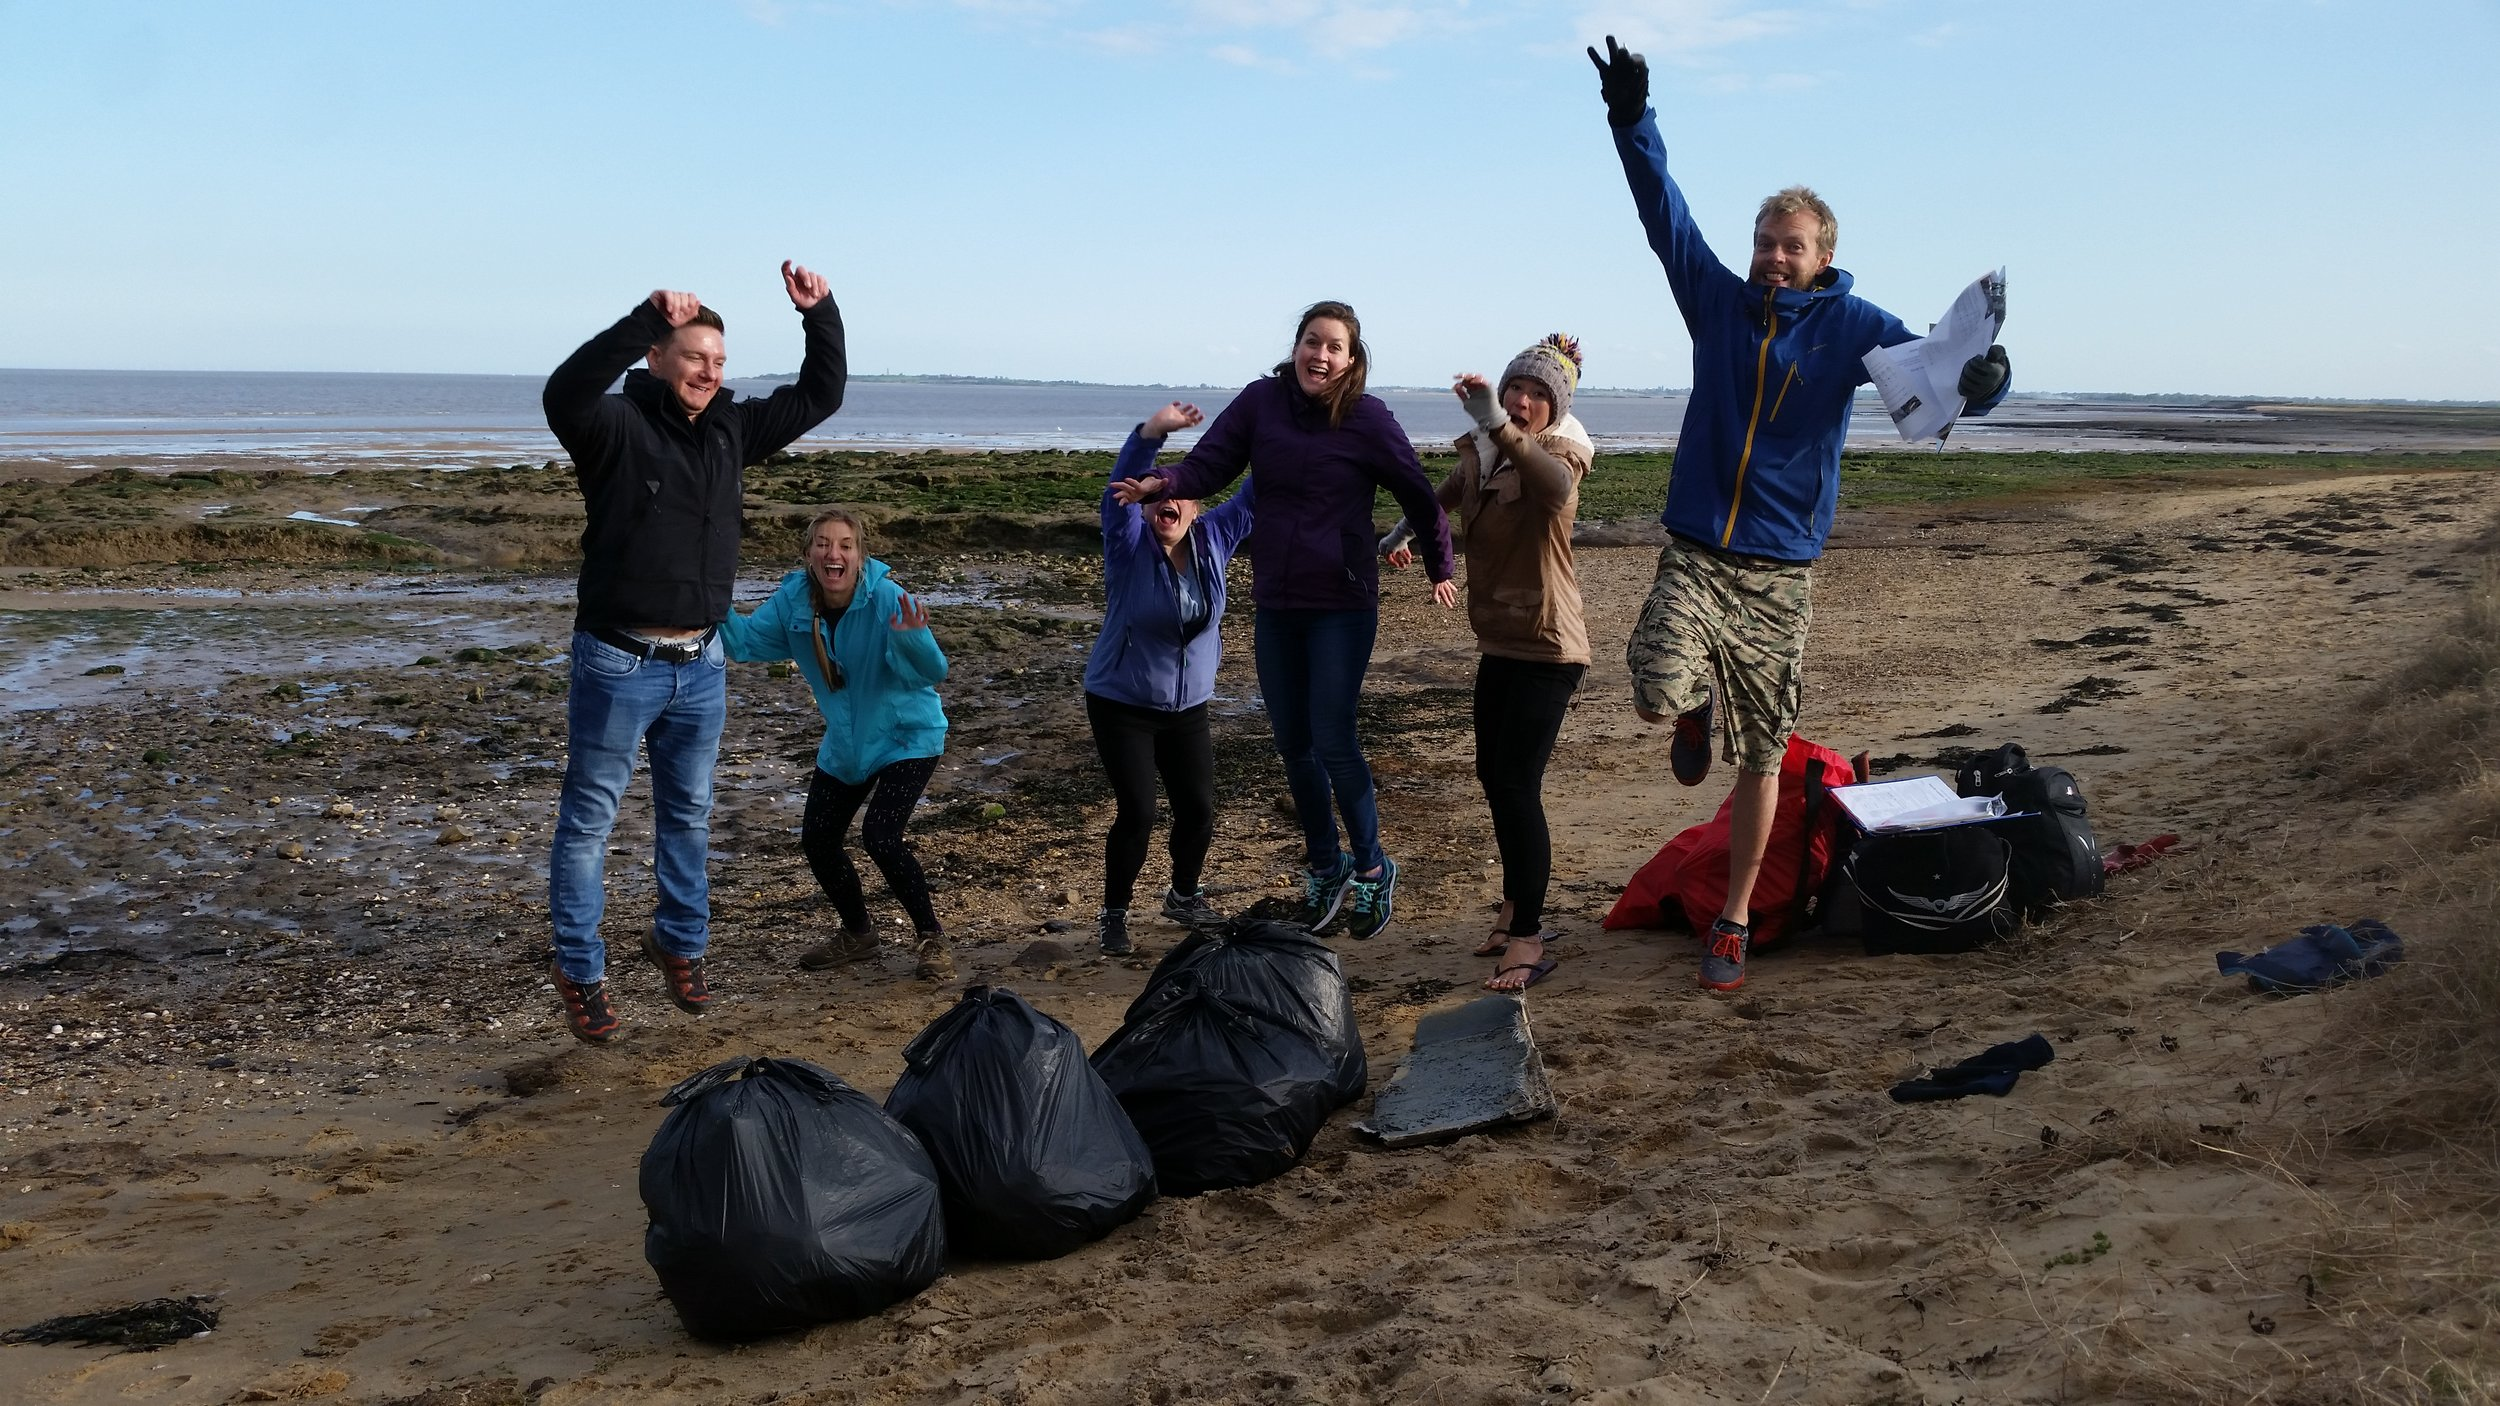 Jumping for joy on our last beach clean of Phase I at Dovercourt Beach, Essex.